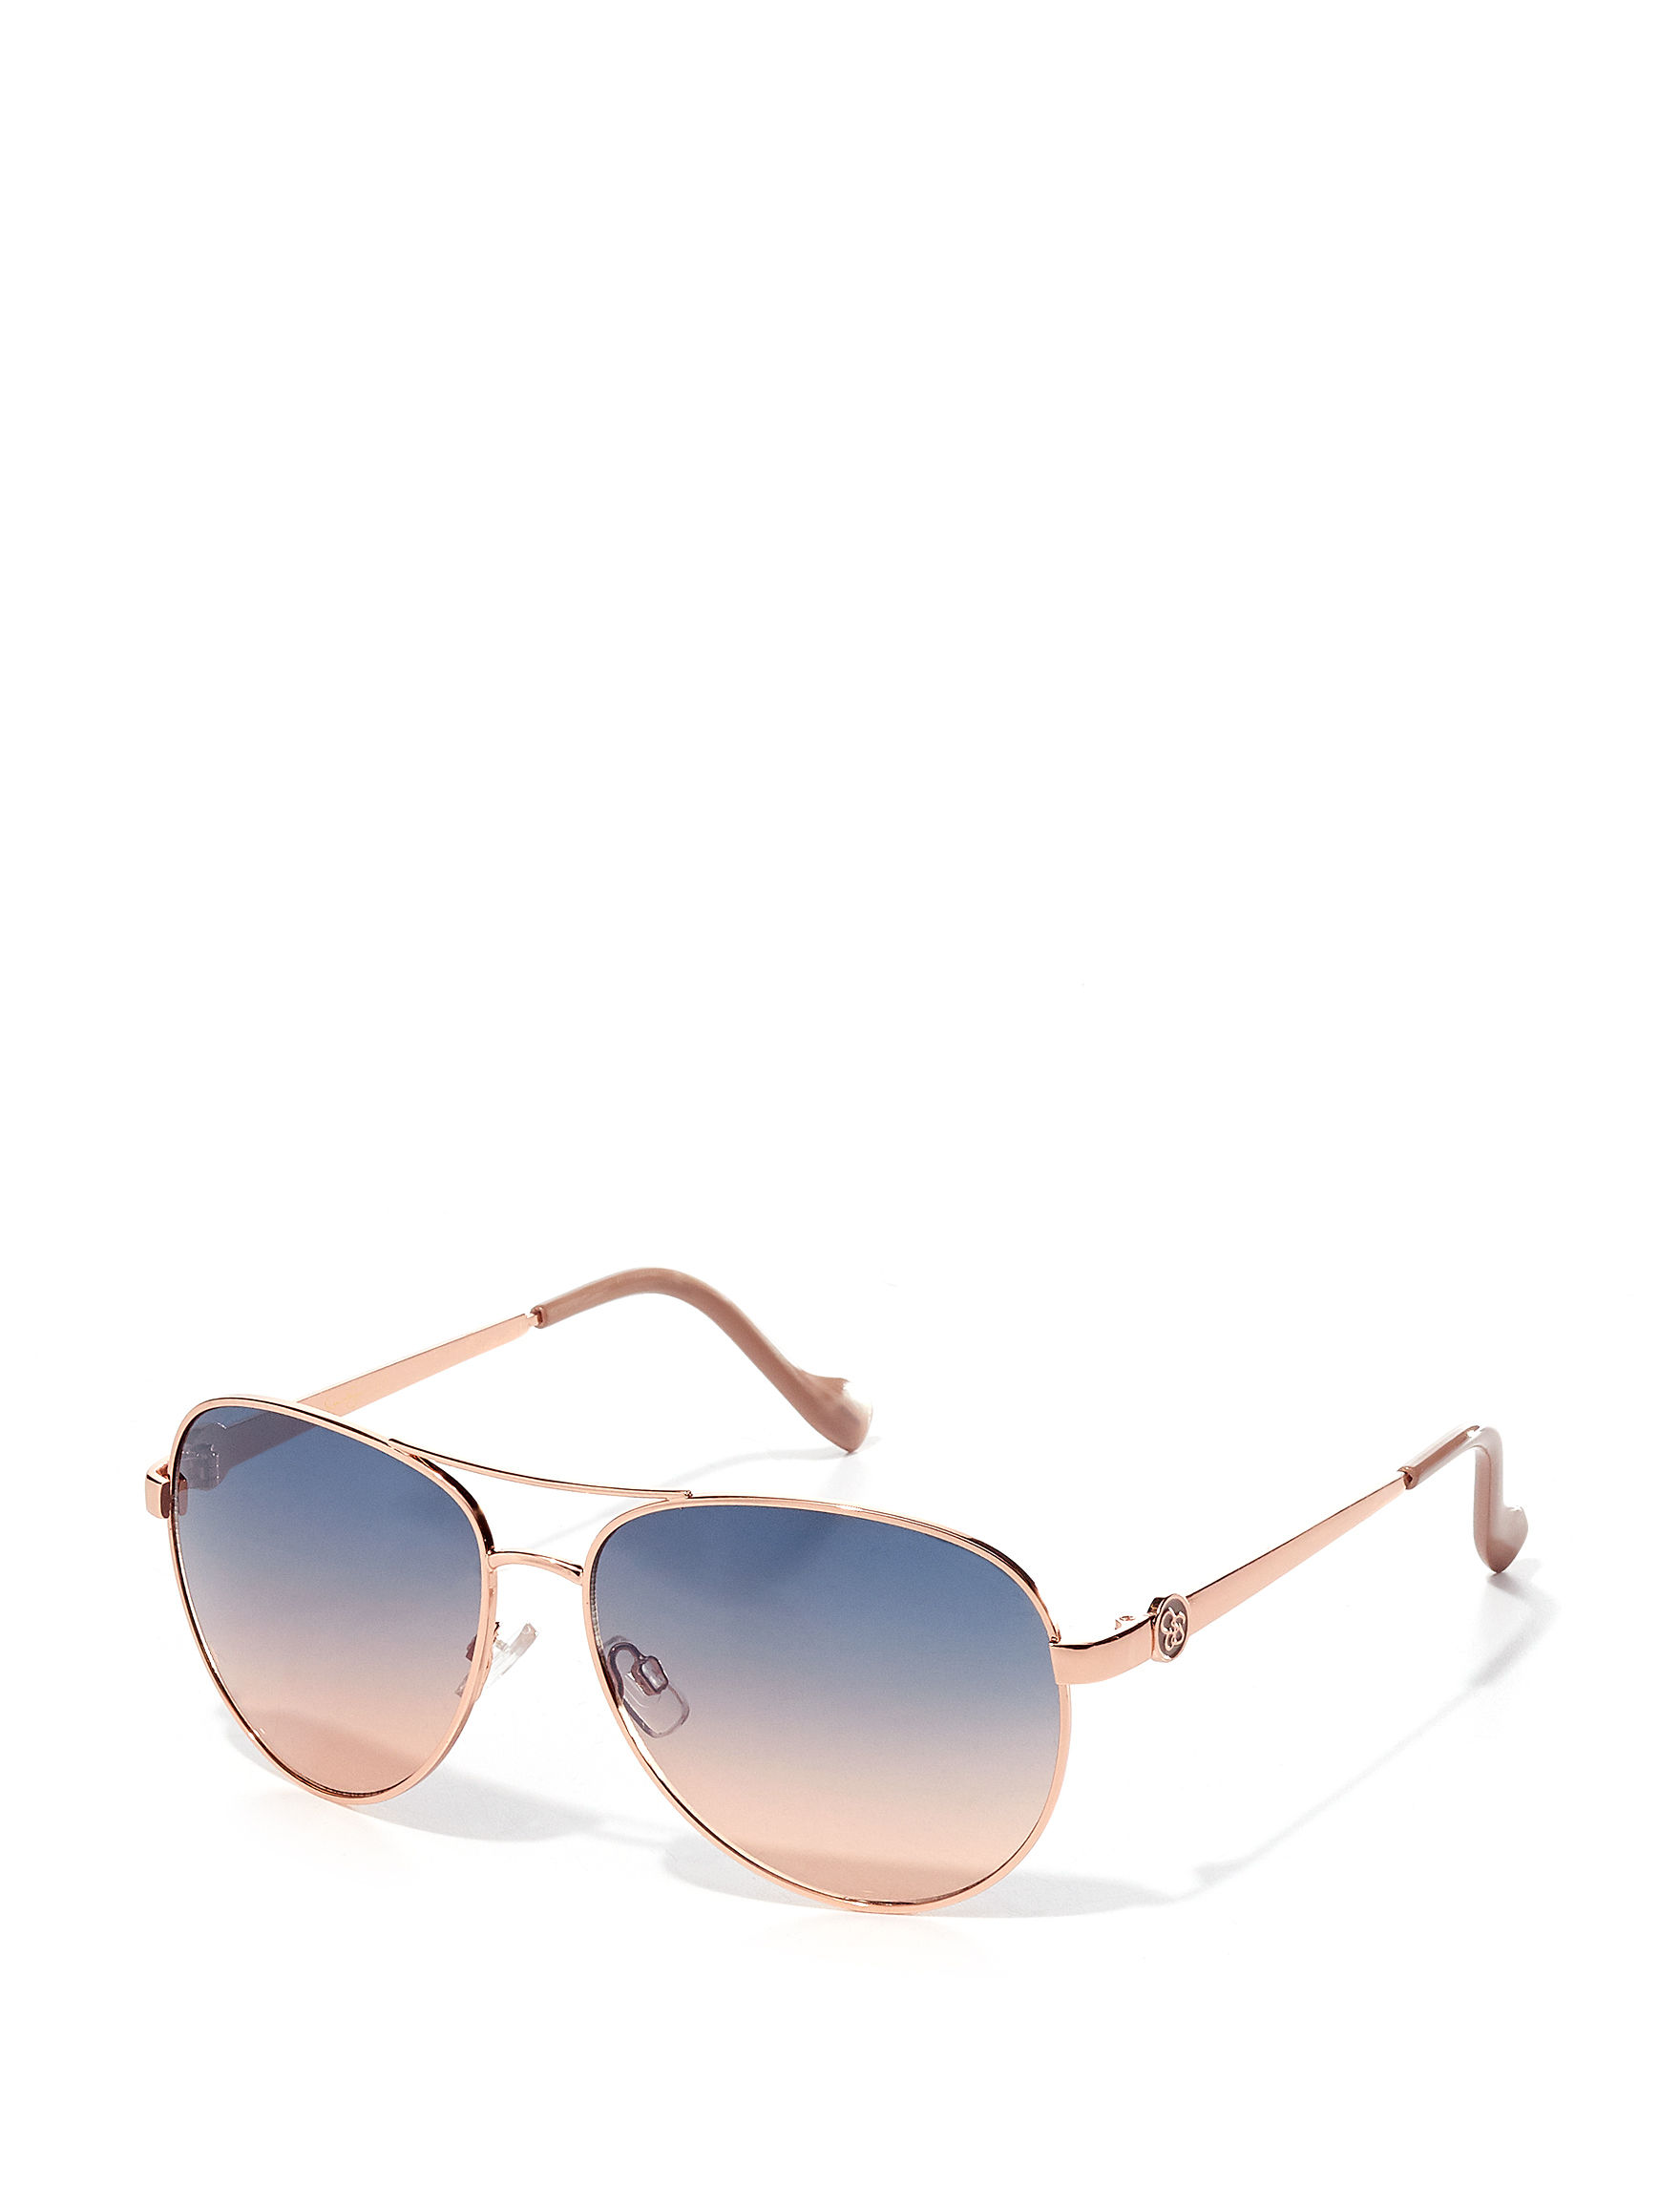 Jessica Simpson Rose Gold Aviator